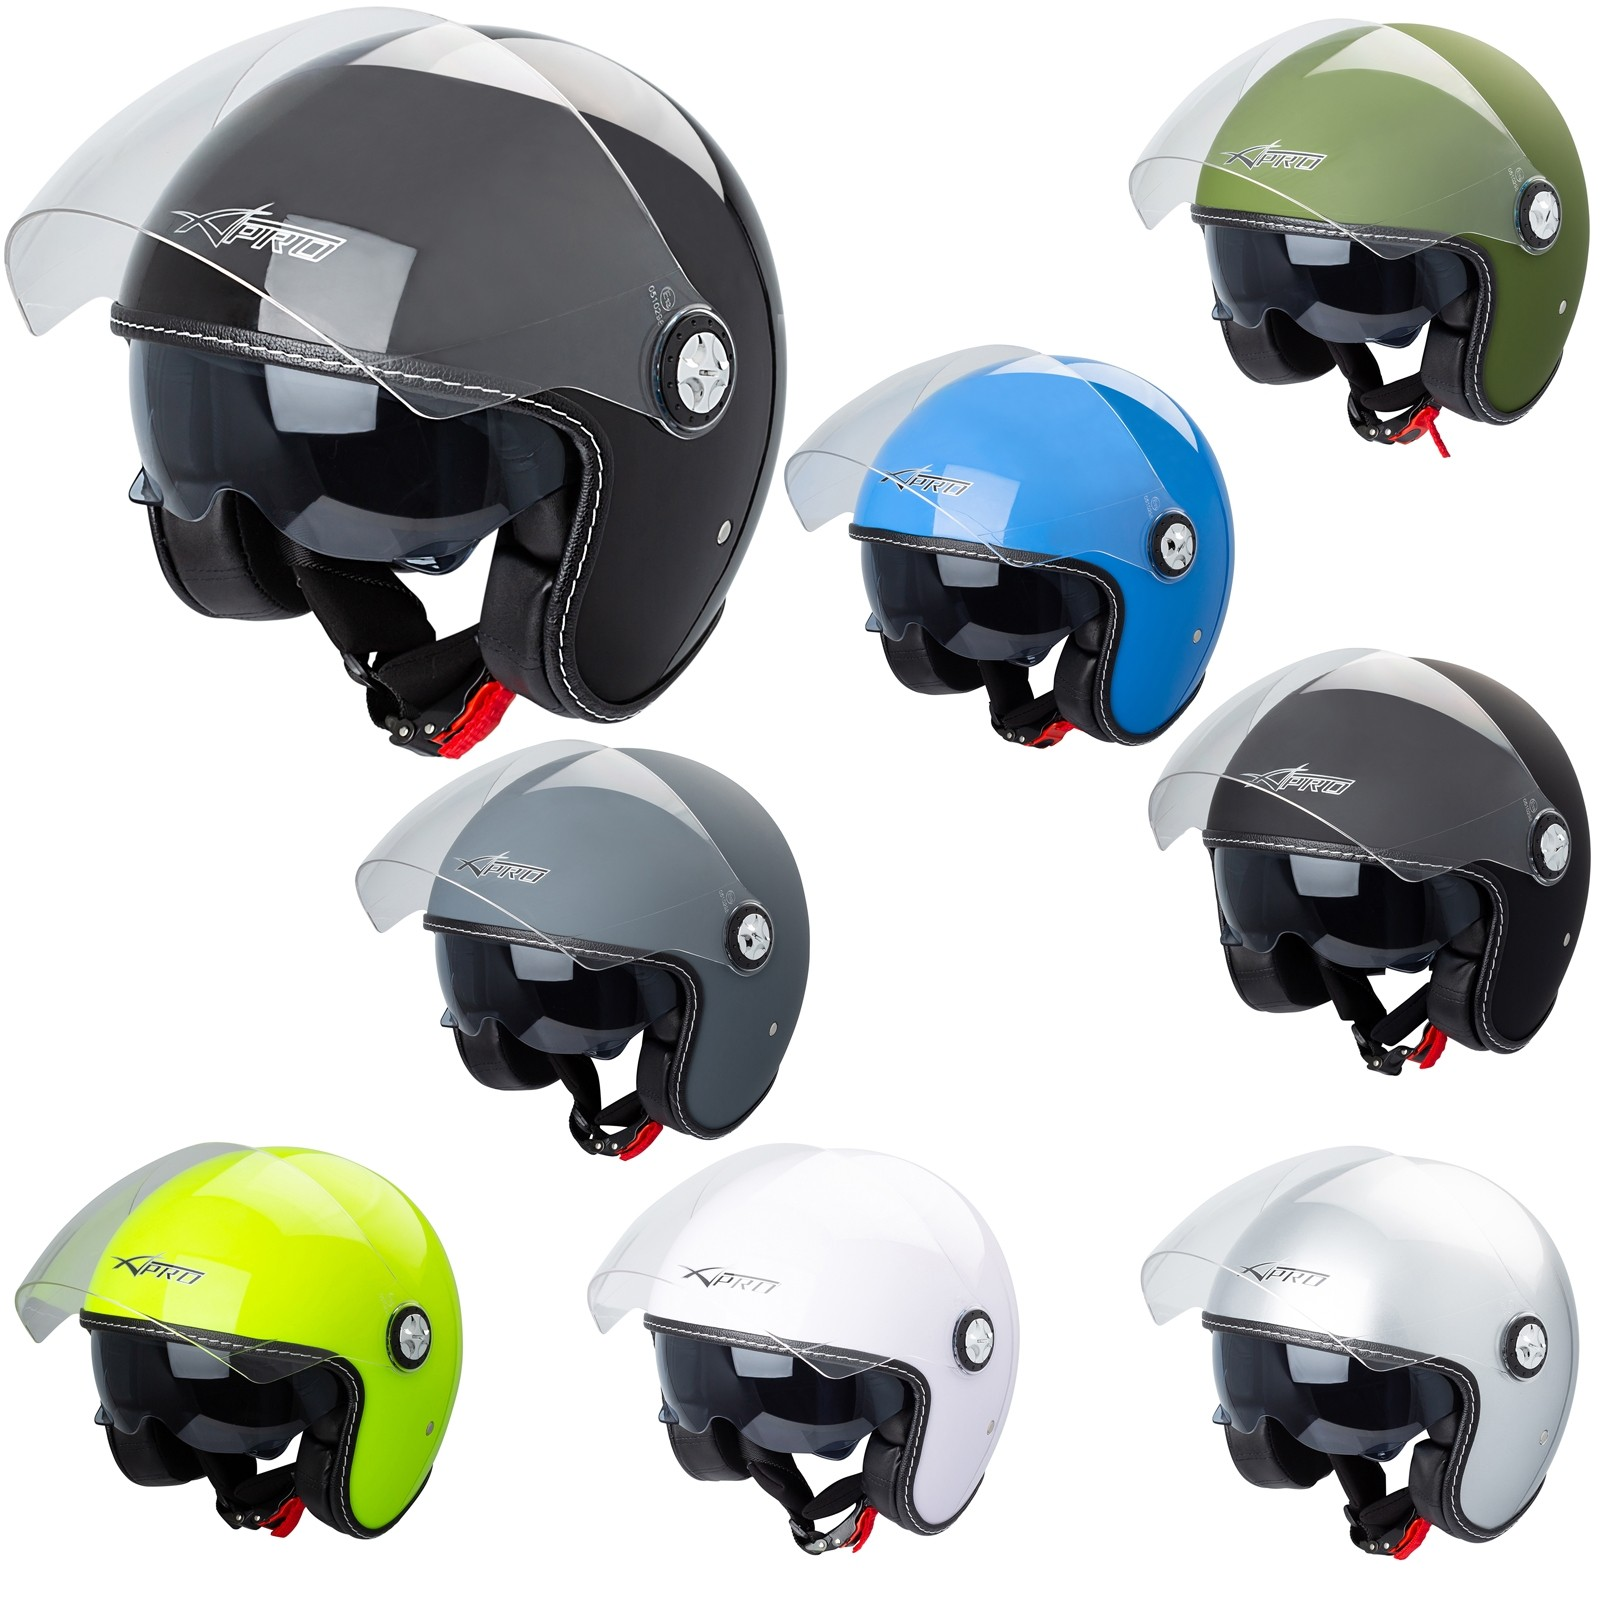 BOSTON_Casco_Helmet_Moto_Motorcycle_A-Pro